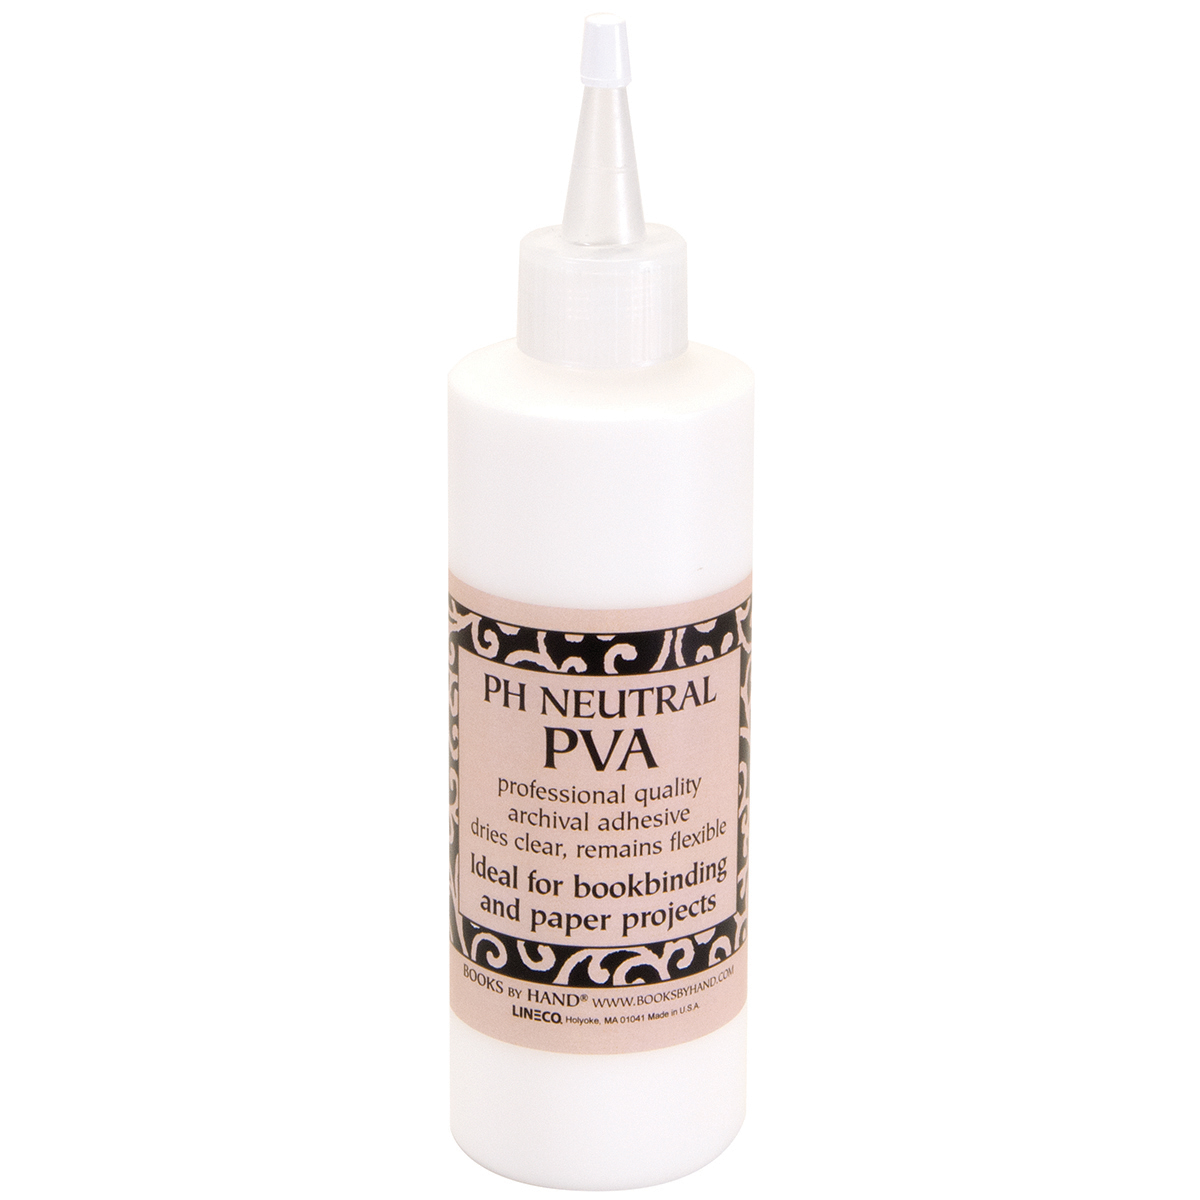 Ph Neutral Pva Adhesive-8 Ounces - image 1 of 1